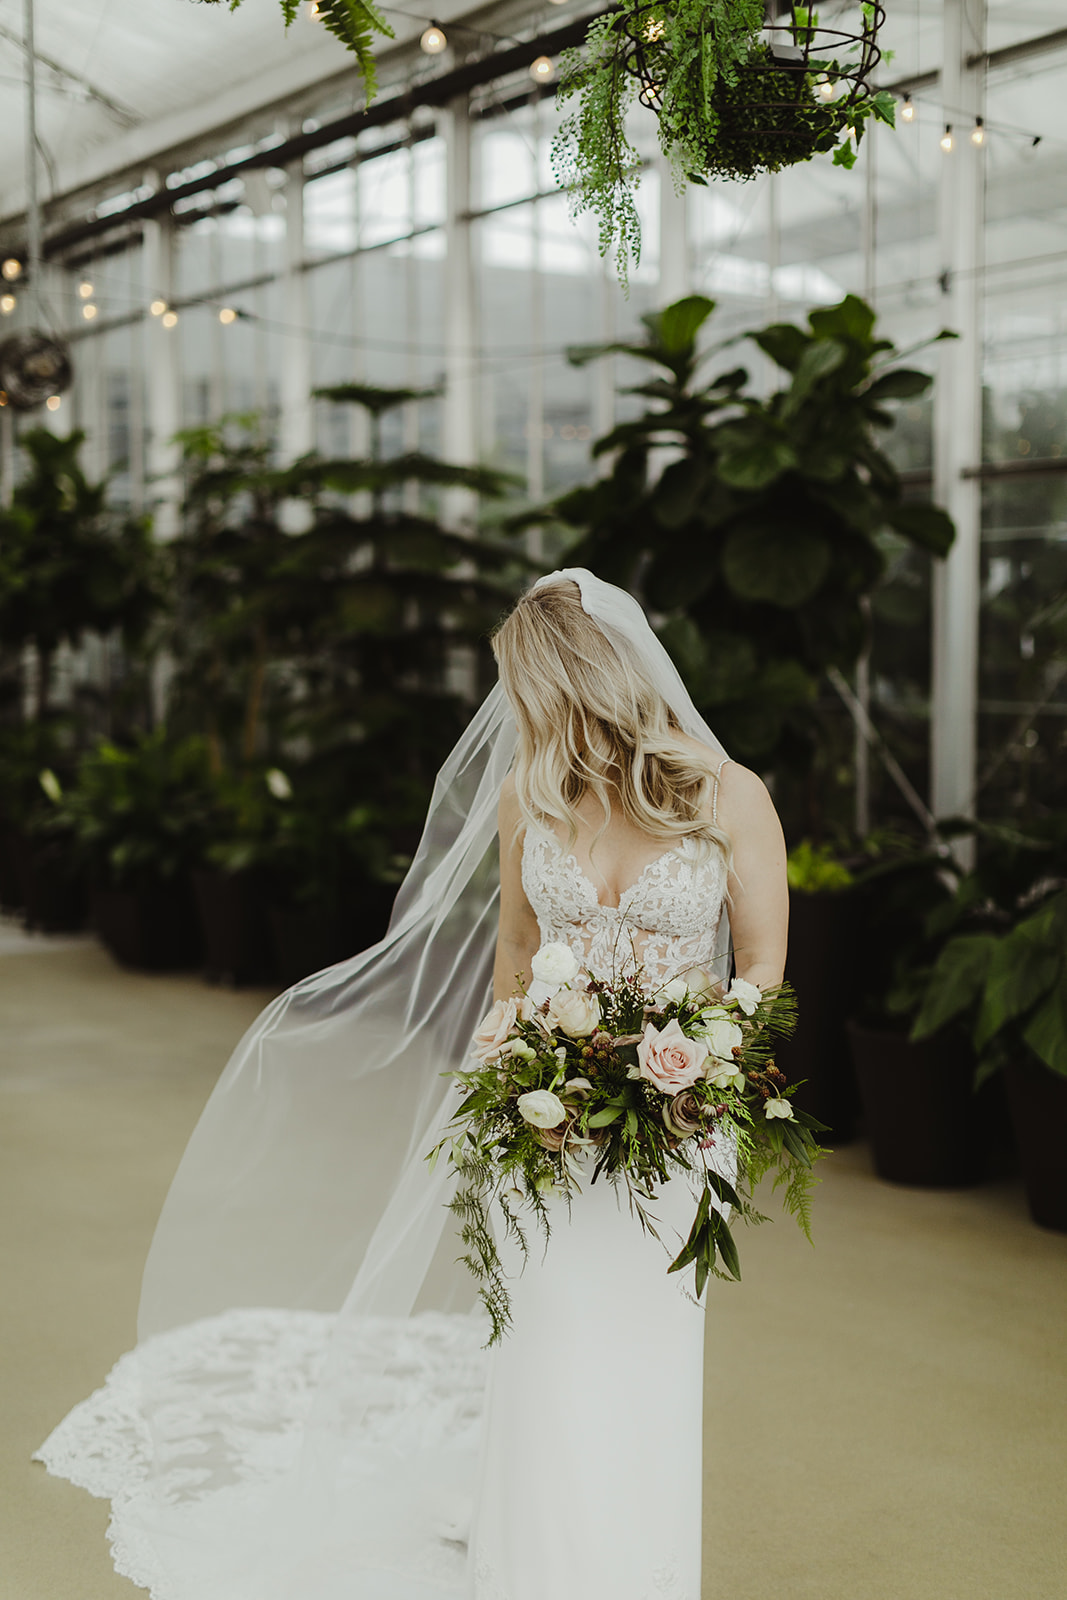 A bride smiling with her bouquet after her wedding ceremony